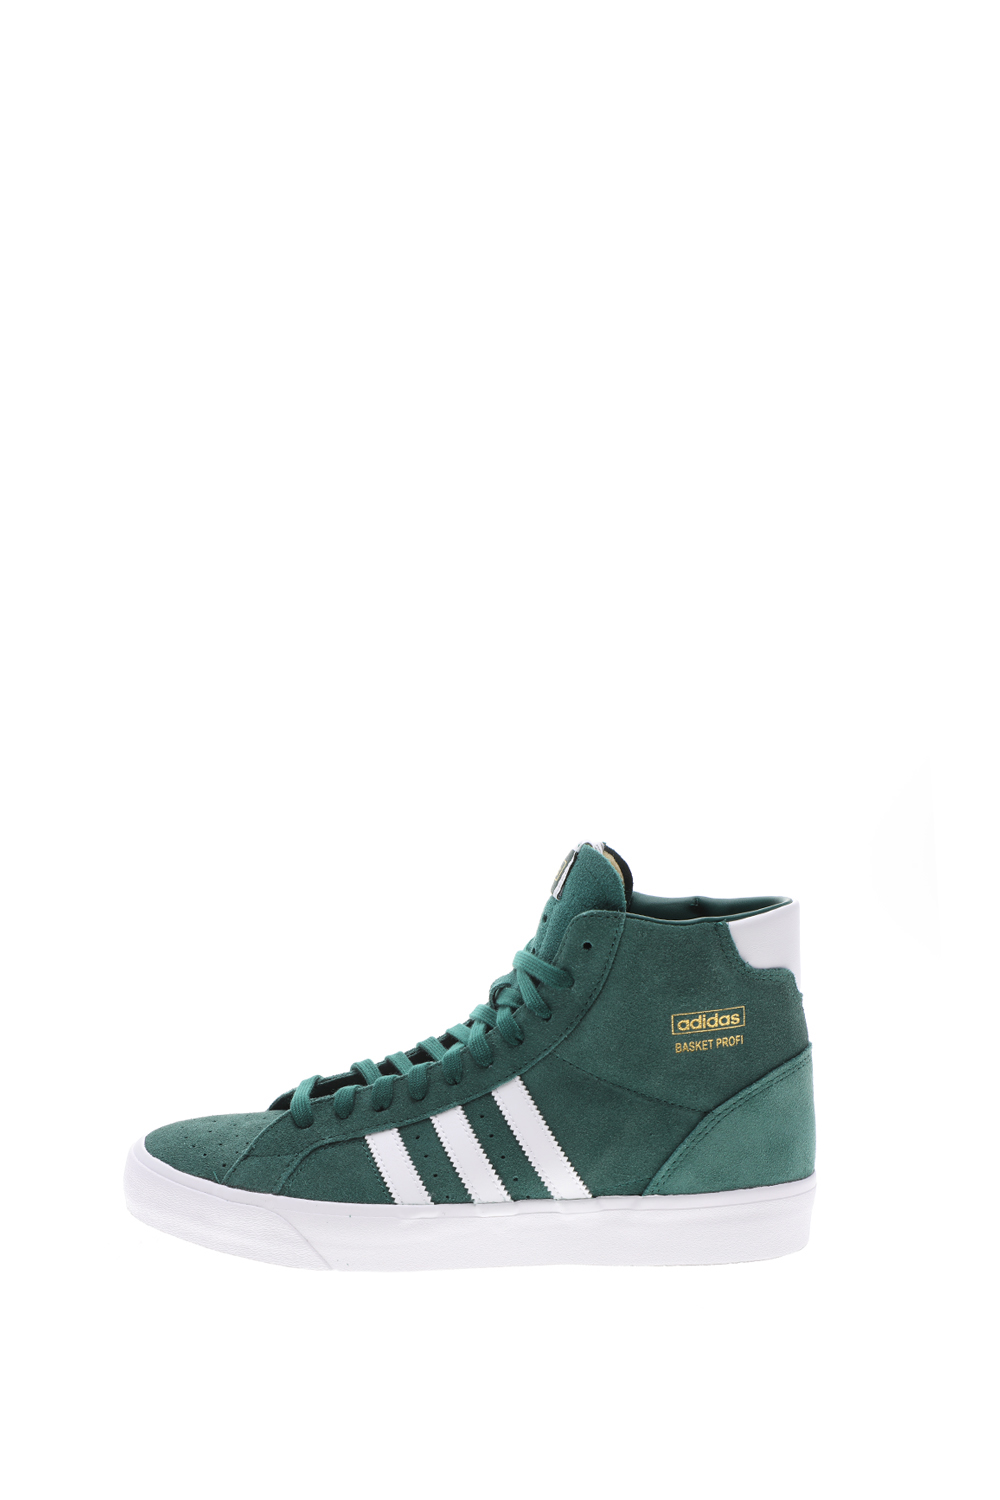 adidas Originals - Ανδρικά sneakers adidas Originals FW4513 BASKET PROFI πράσινα